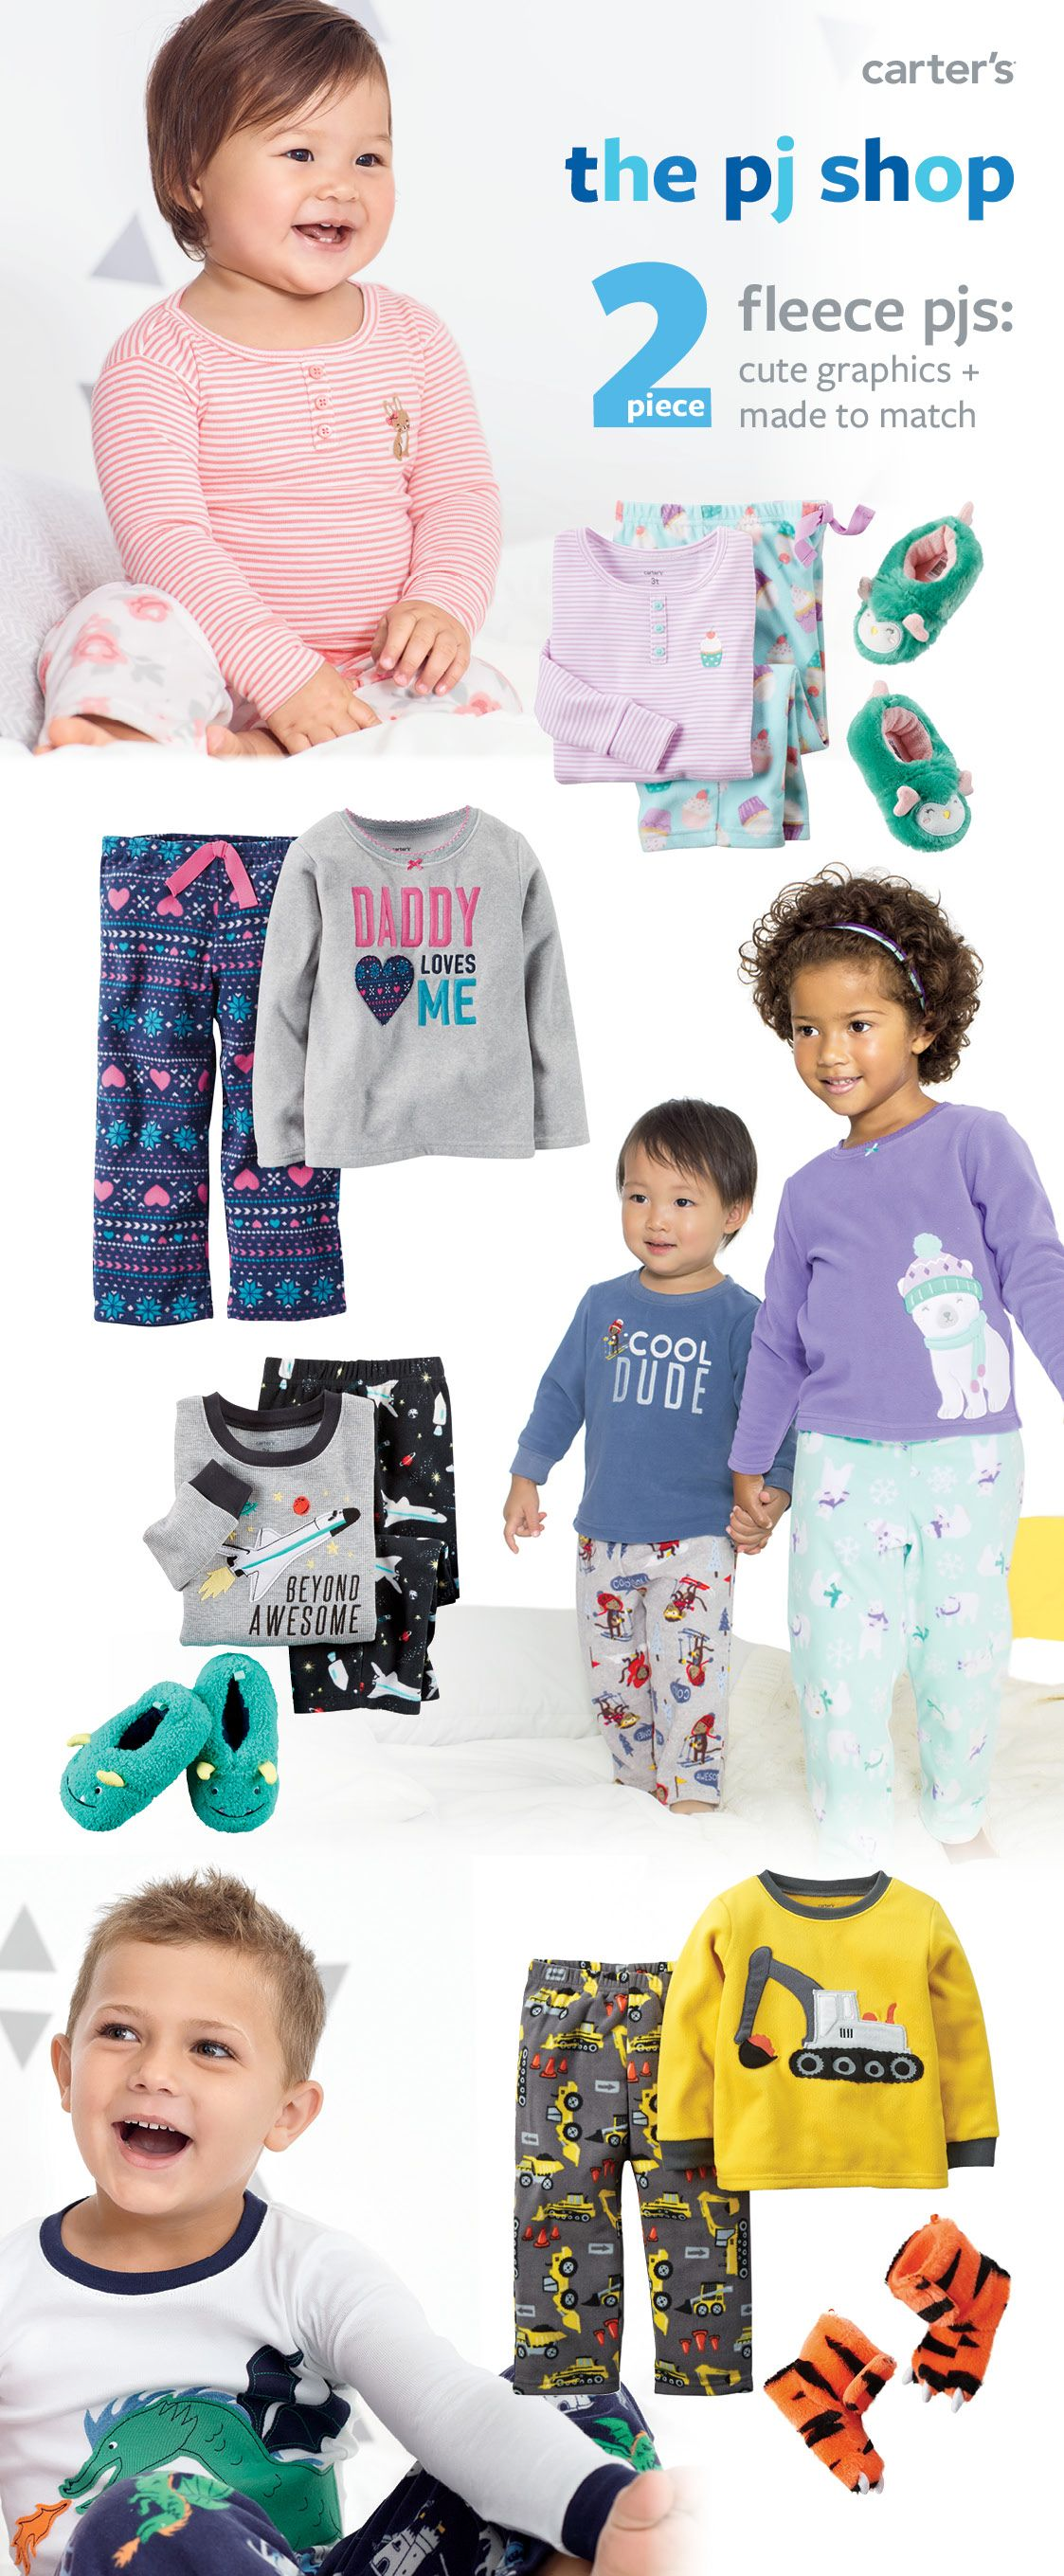 a9636b346991 Dreamy…. Cozy 2-piece fleece jammies  fun graphics + made to match ...